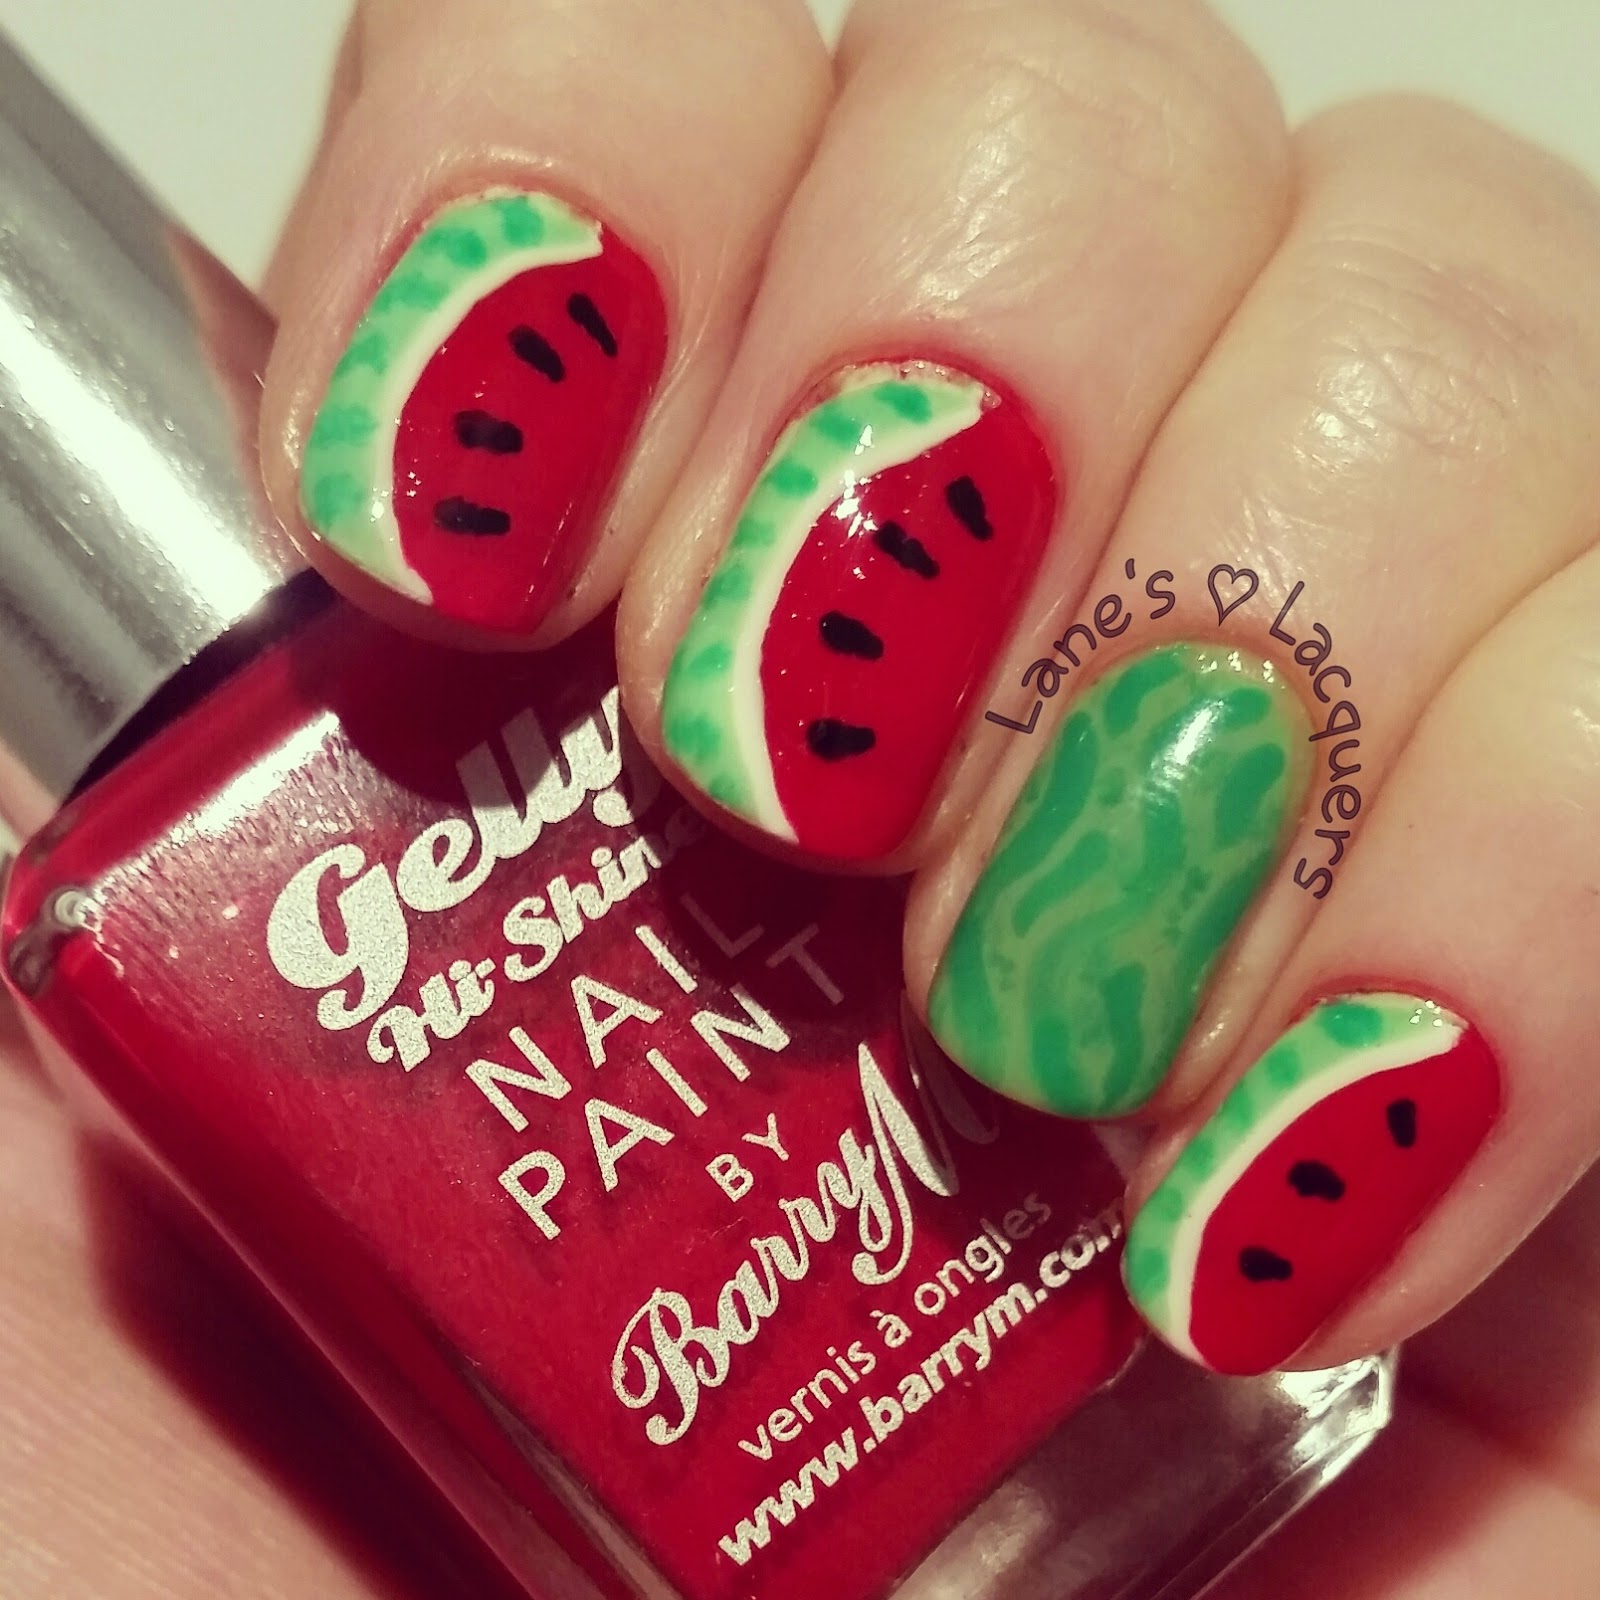 barry-m-blood-orange-watermelon-freehand-nail-art (2)